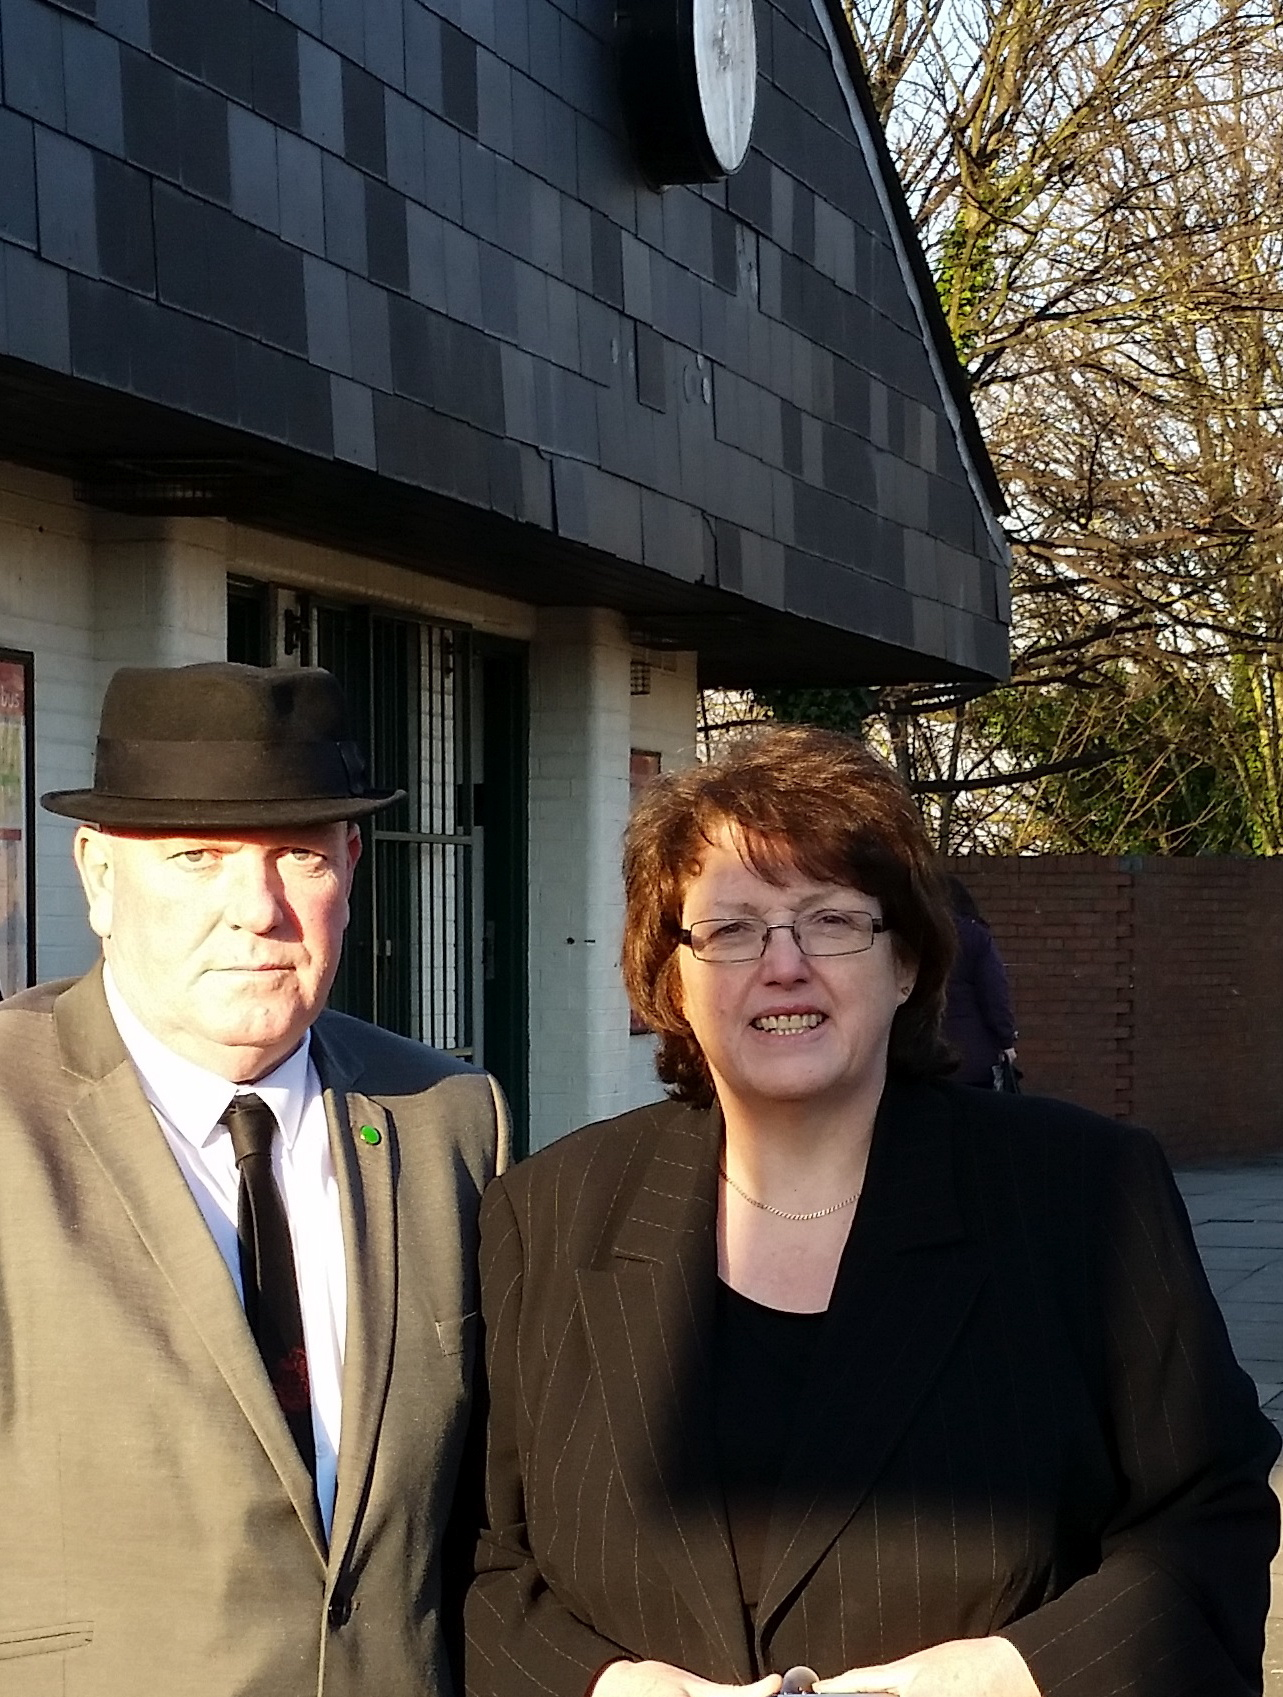 Co_Cllr_John_Fillis_and_Rosie_Cooper_MP_at_Ormskirk_bus_station.jpg